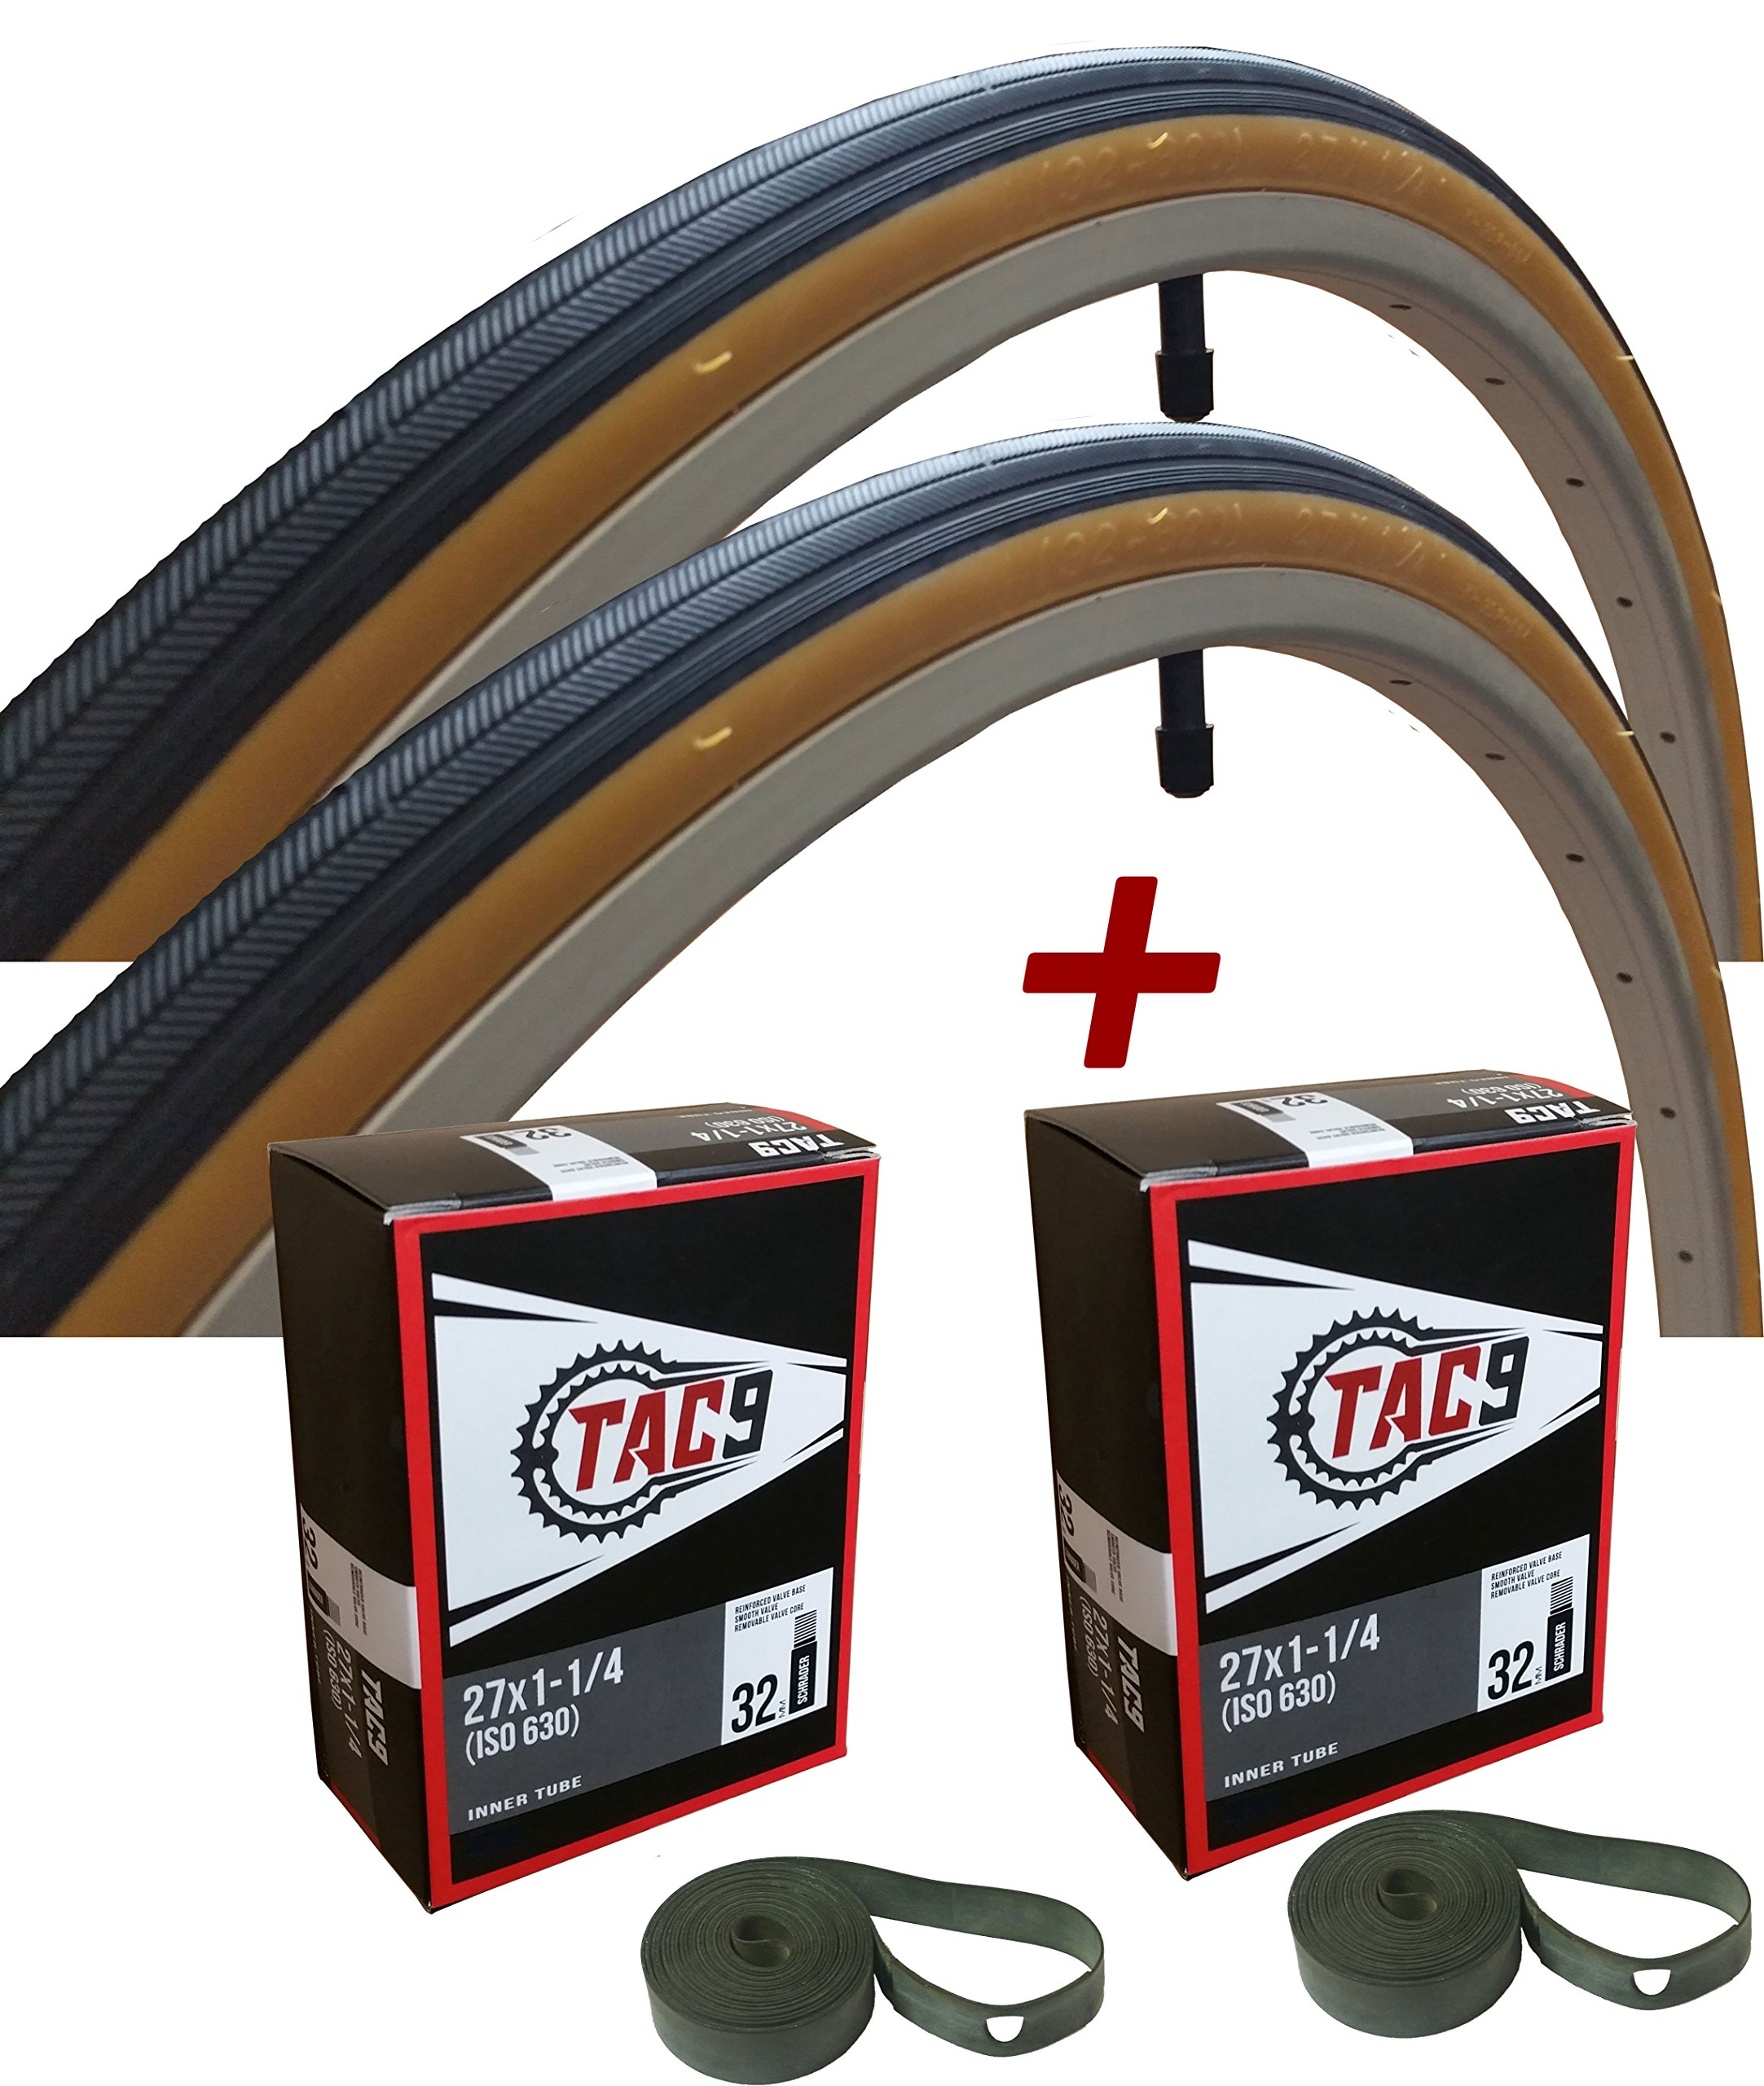 TAC 9 Two Pack - 27x1-1/4 Bike Tire, Bonus Tube and Rim Strip - Select Gum Wall or Black Wall by TAC 9